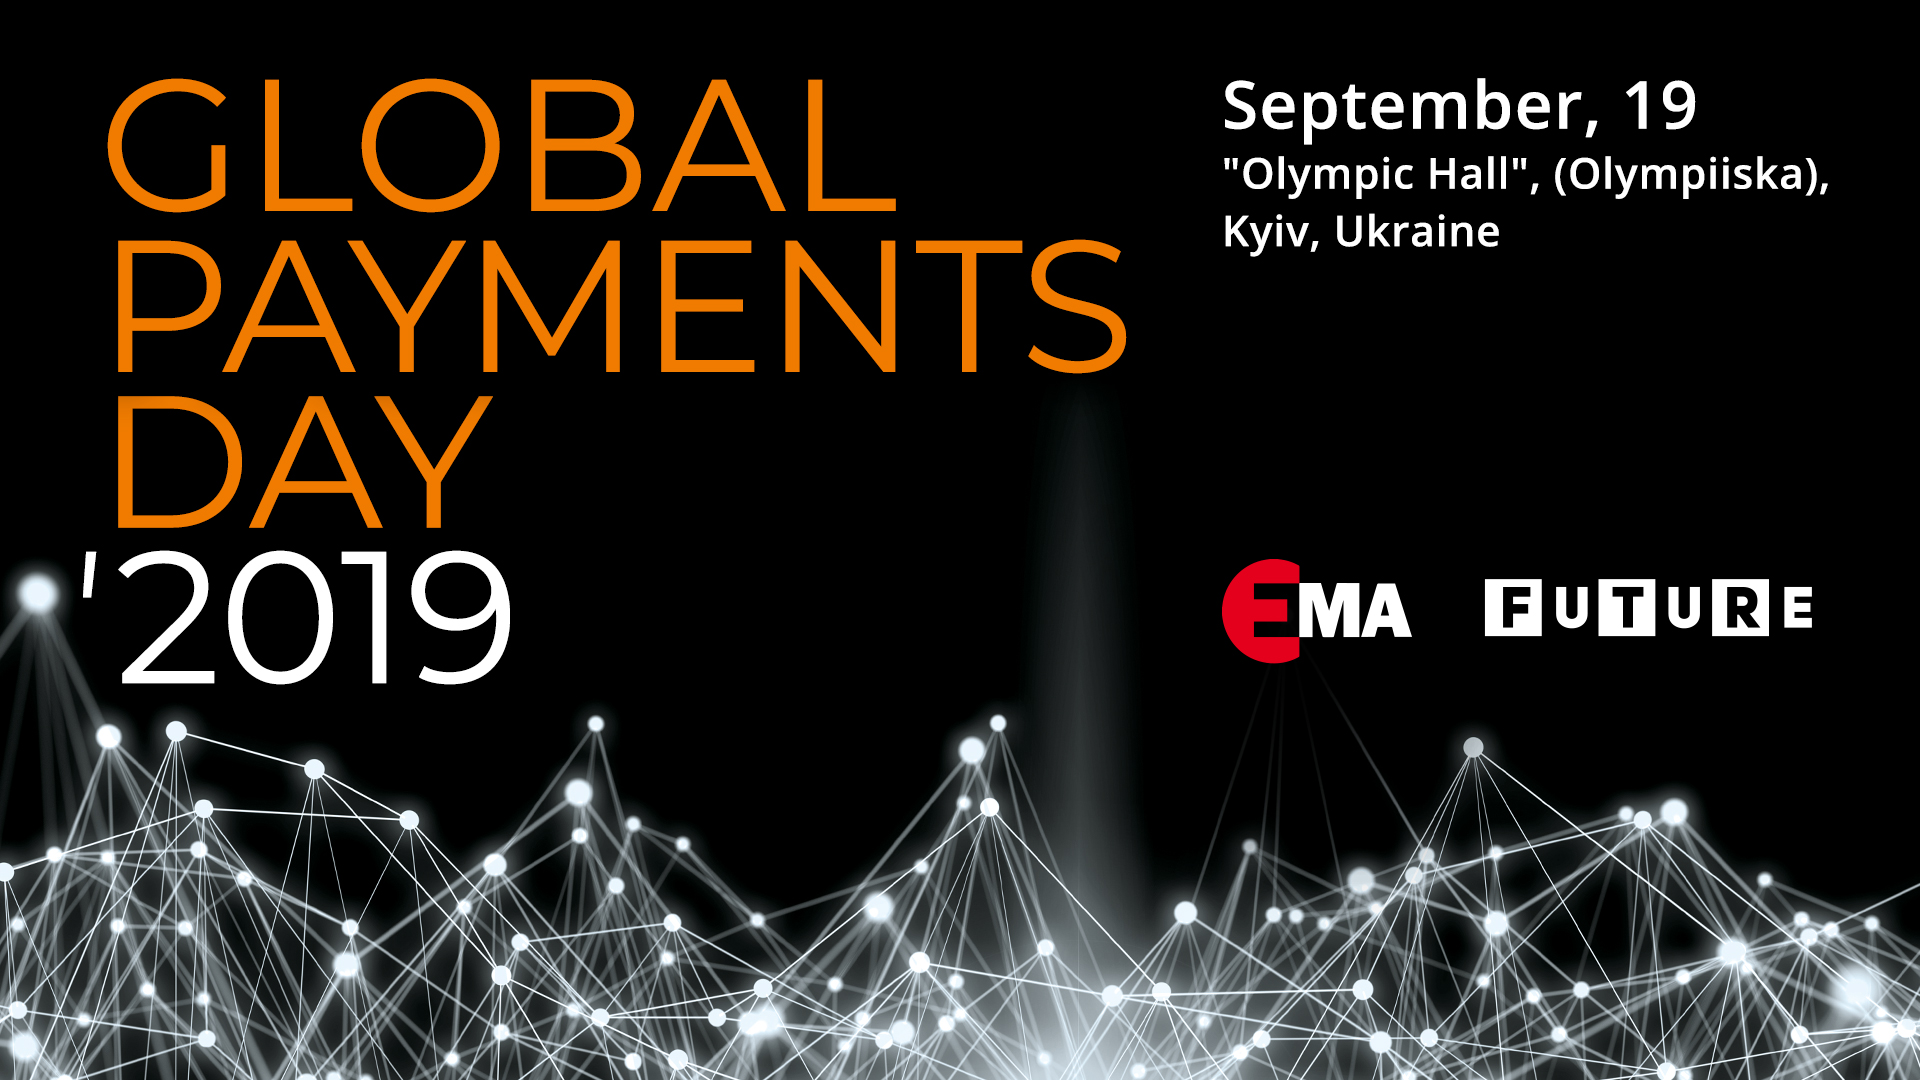 Global Payments Day '2019